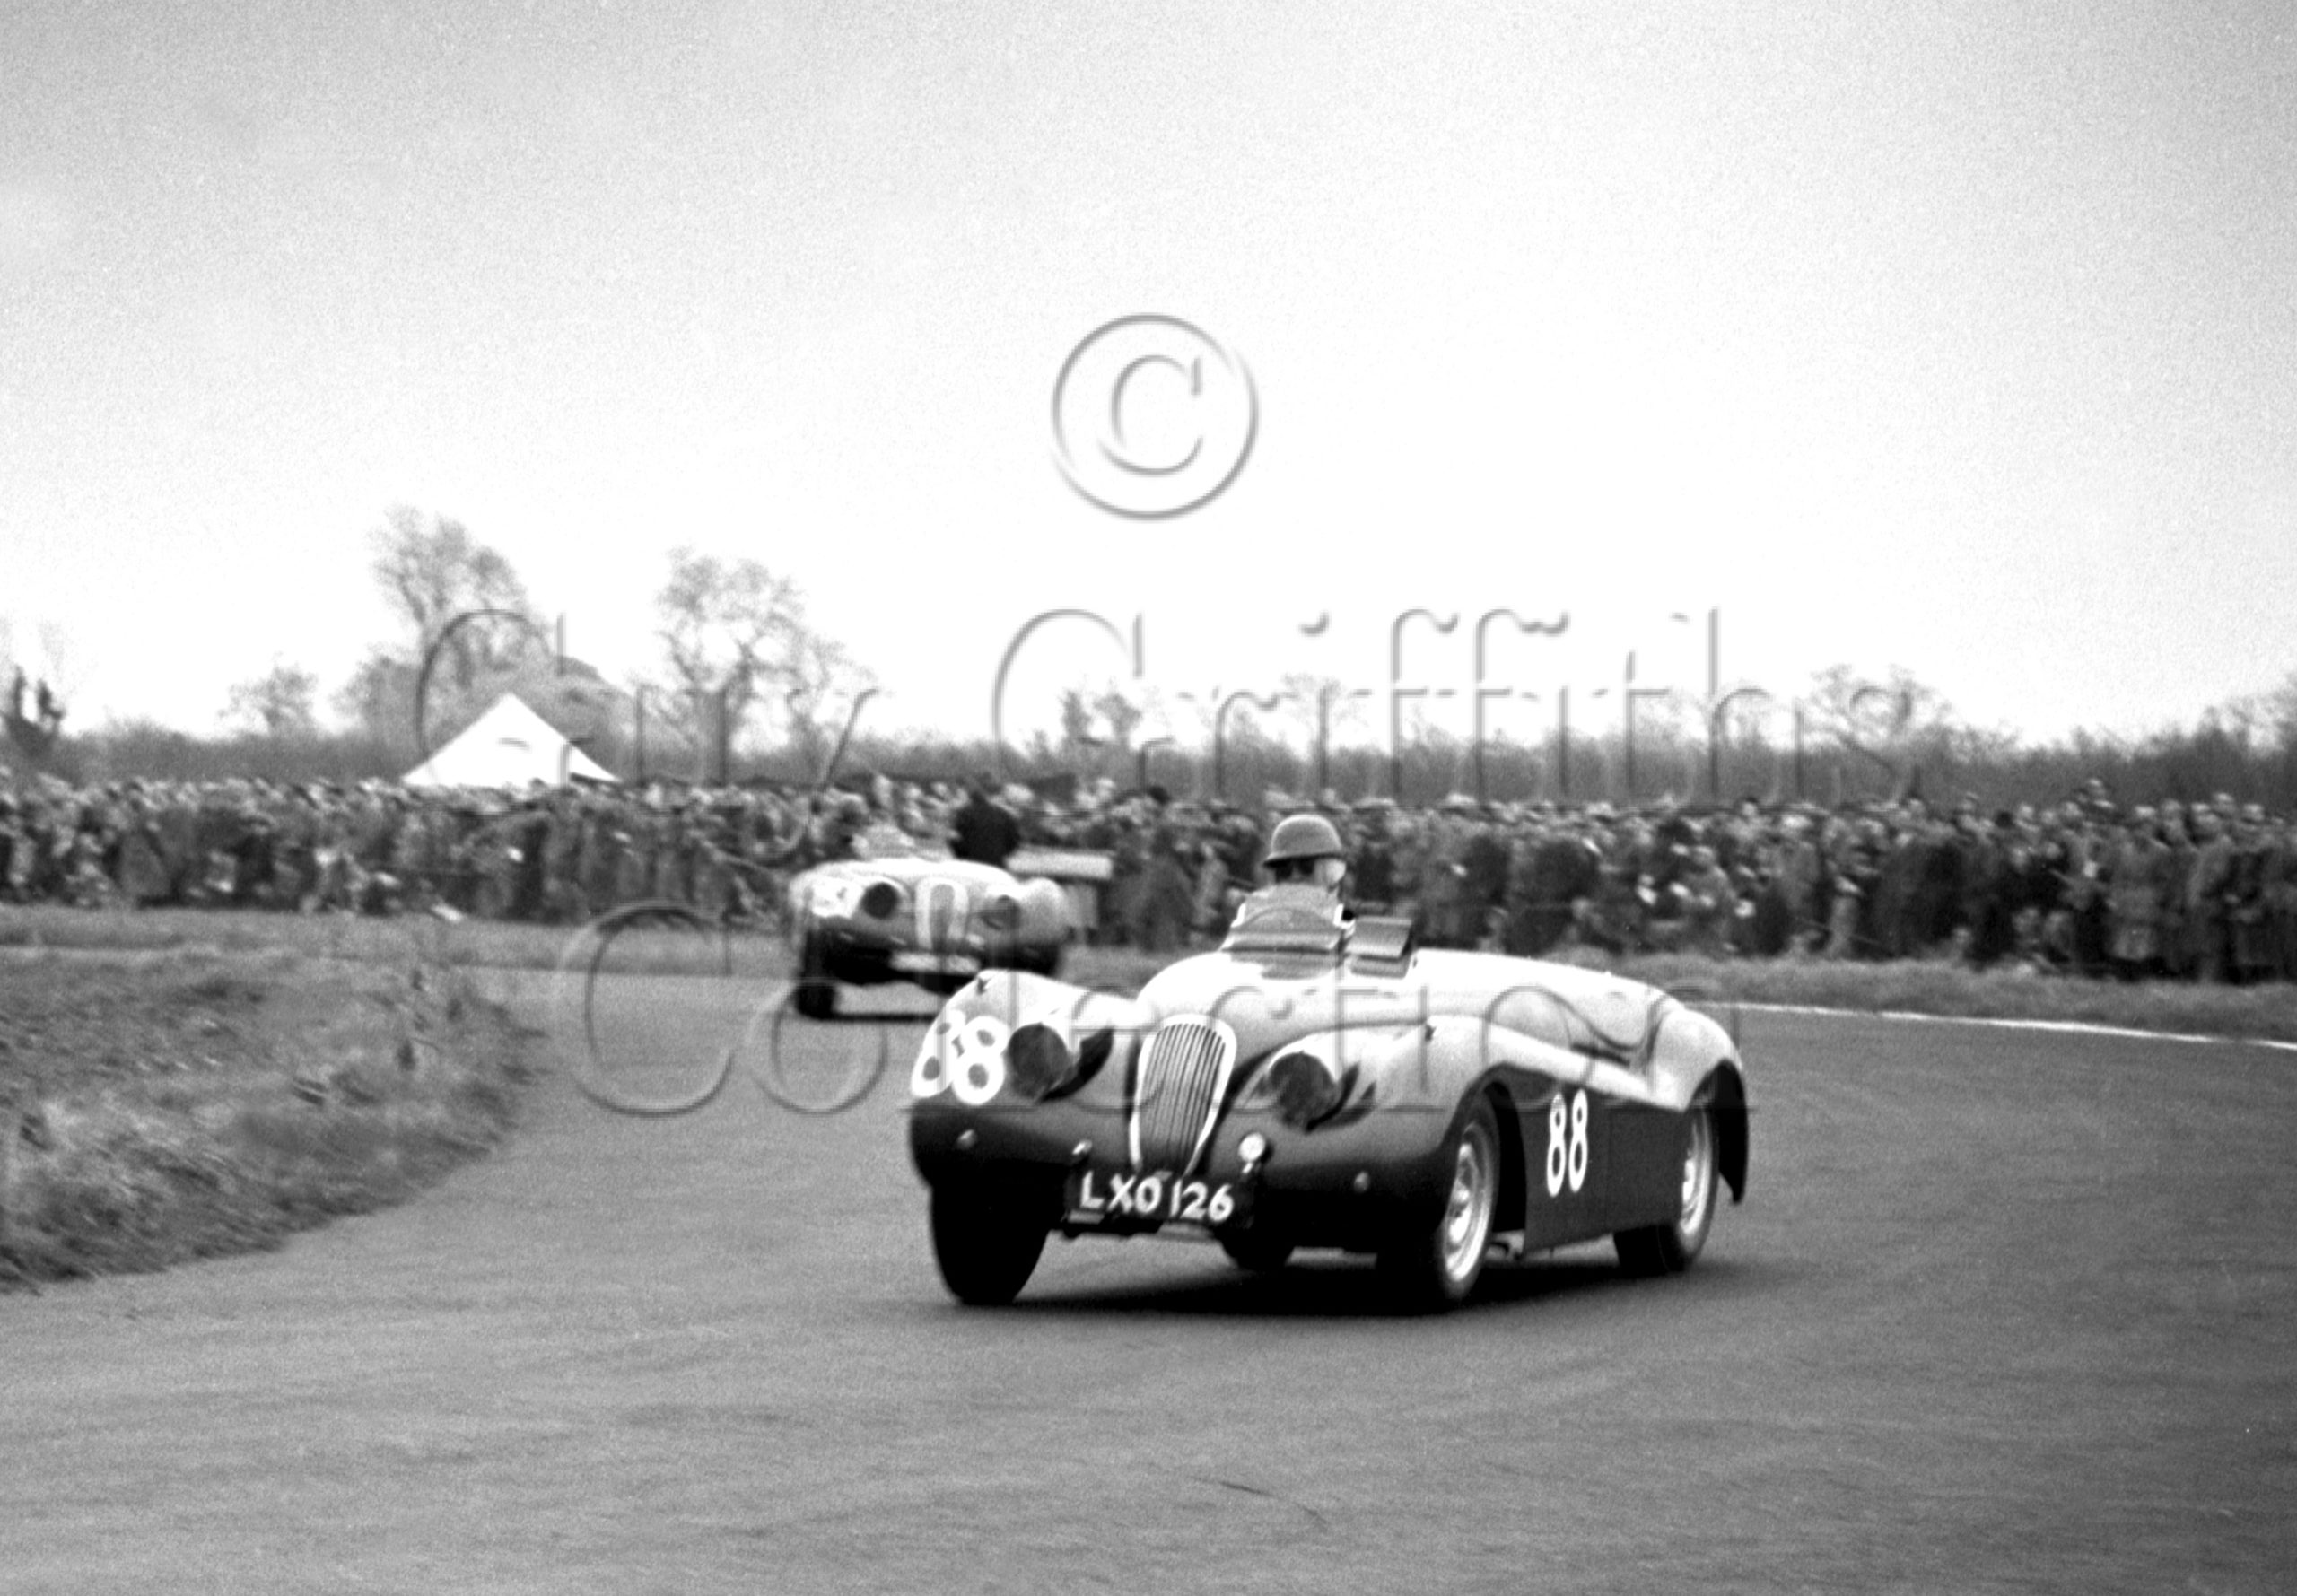 52-281—J-L-M-Scott-Douglas–Jaguar-XK-120-LXO-126–Castle-Combe–12-04-1952.jpg.jpg - Guy Griffiths Collection